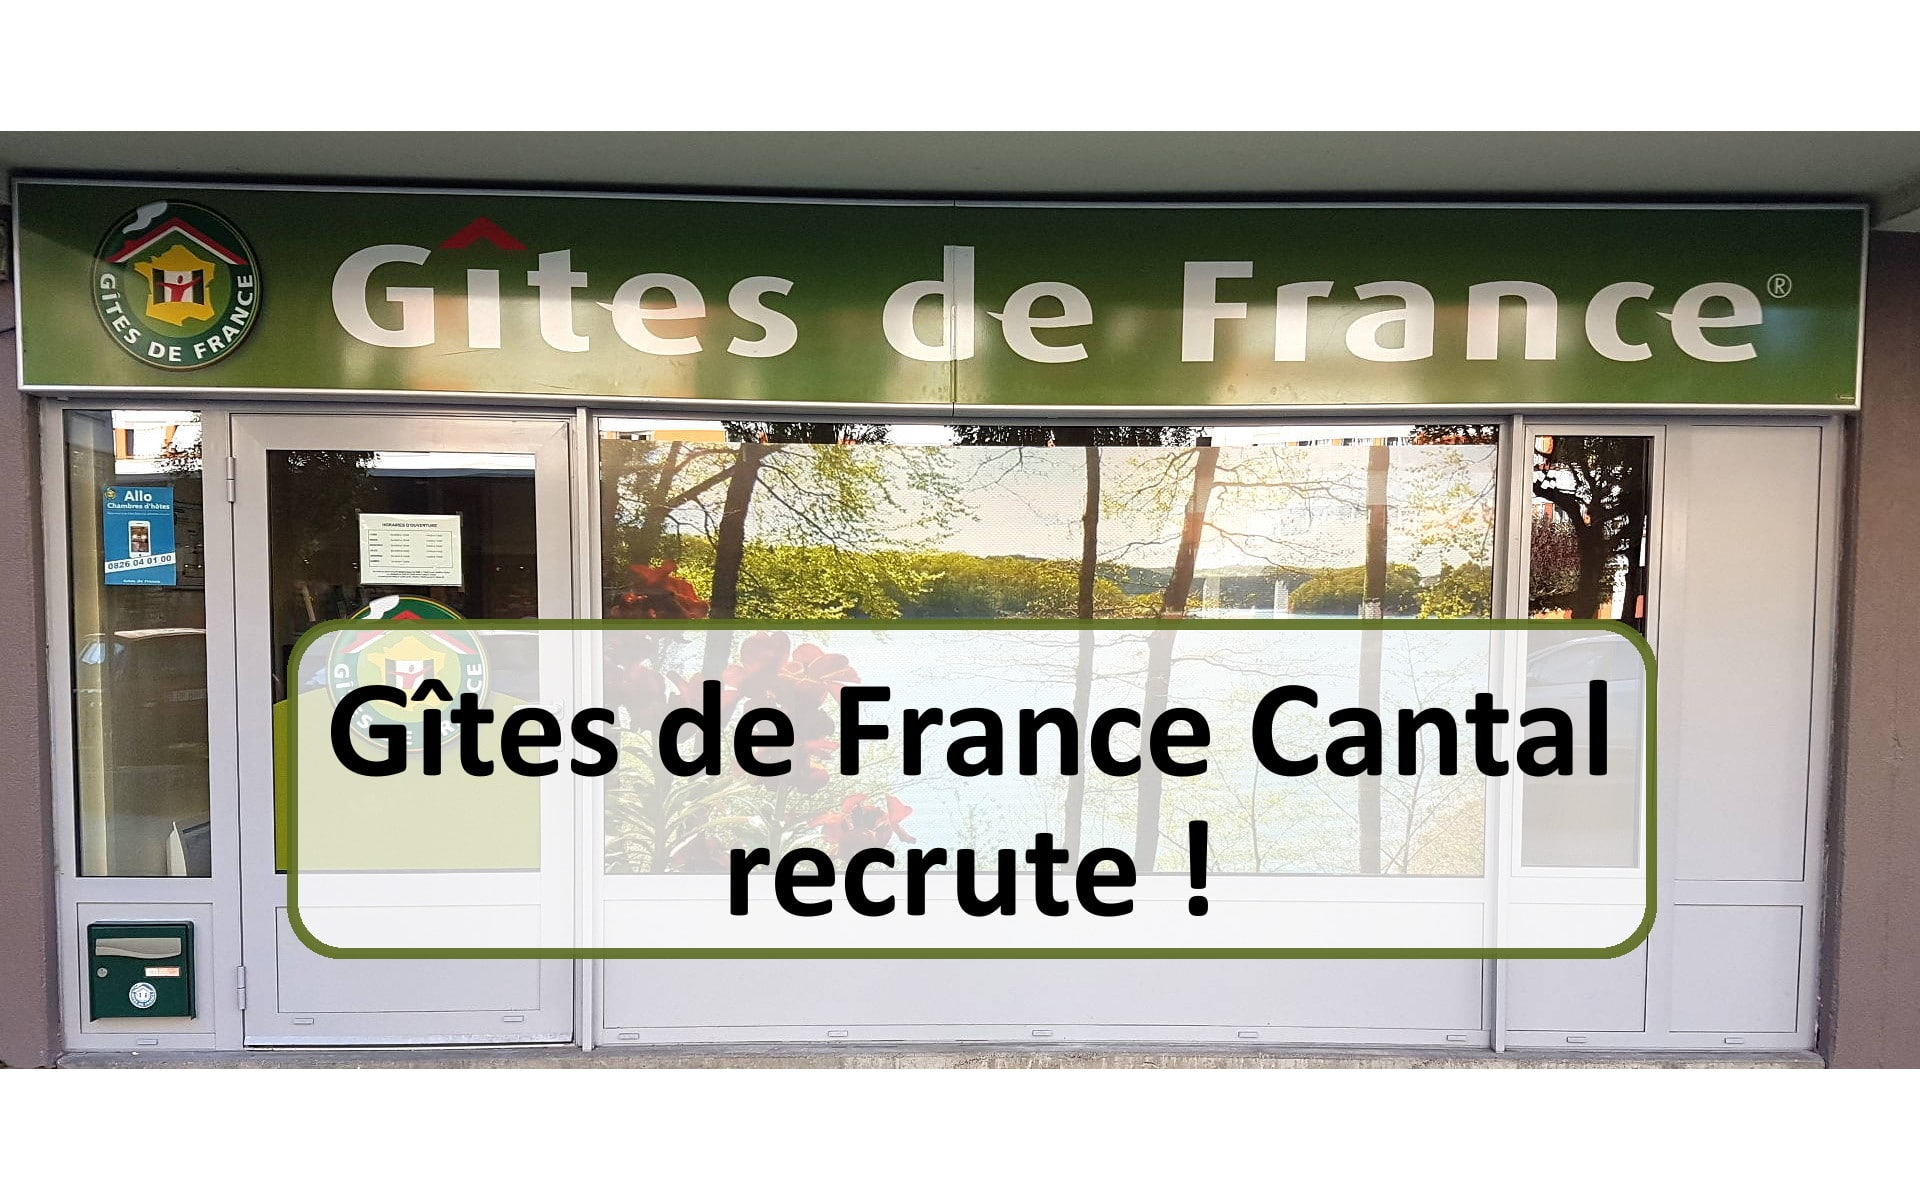 Gîtes de France Cantal recrute !